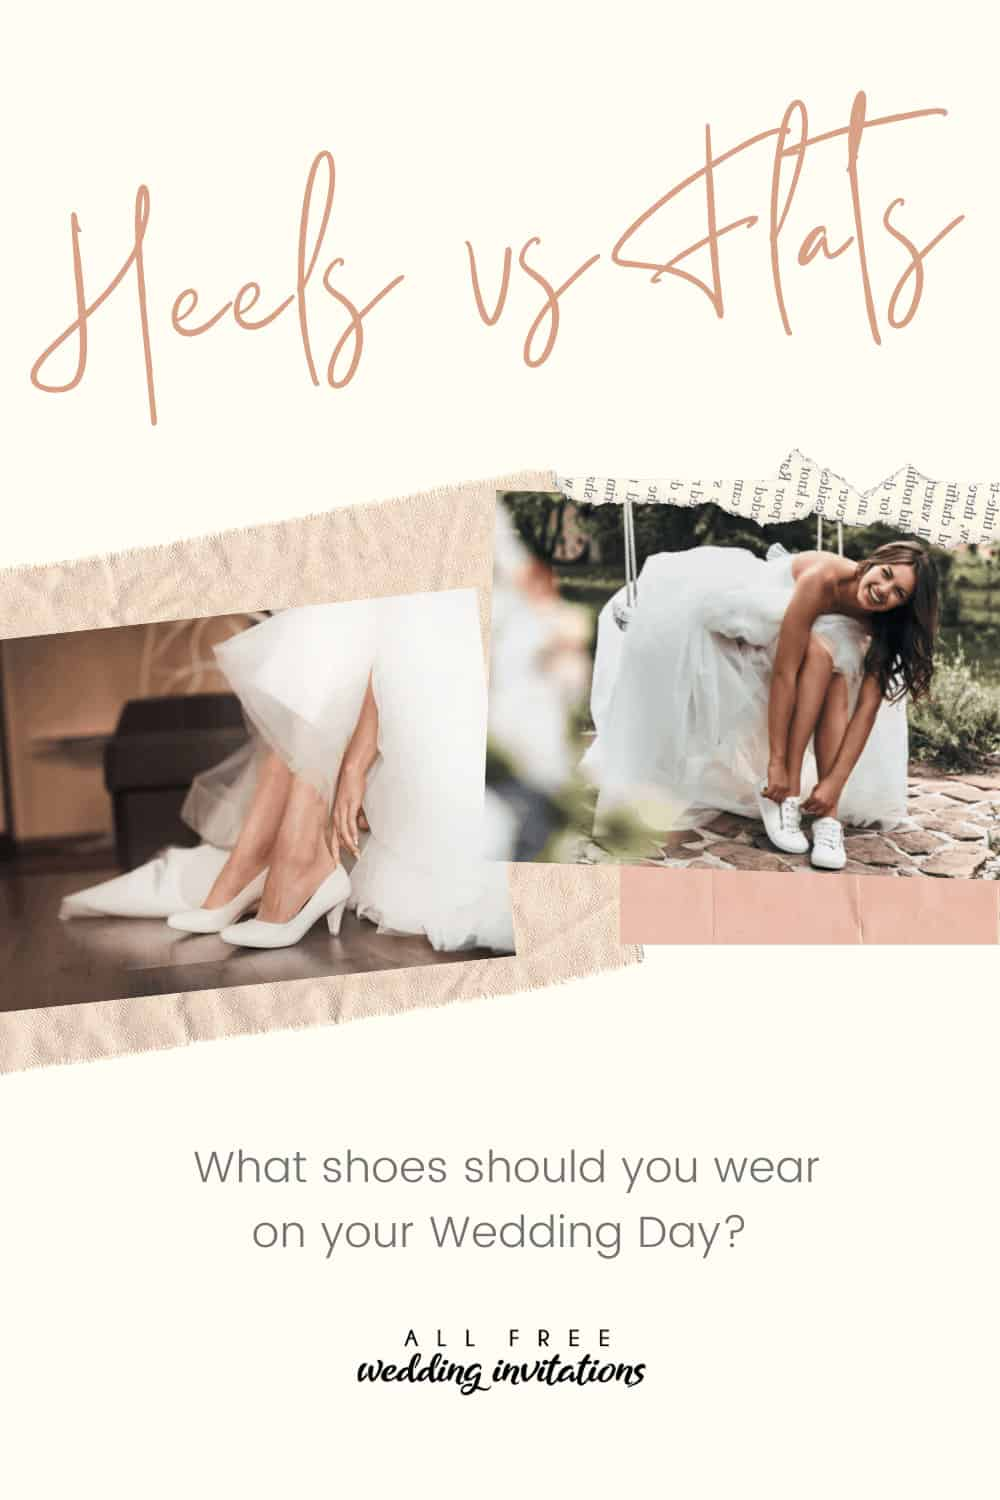 Heels vs Flats: What shoes should you wear on your Wedding Day? - All Free Wedding Invitations